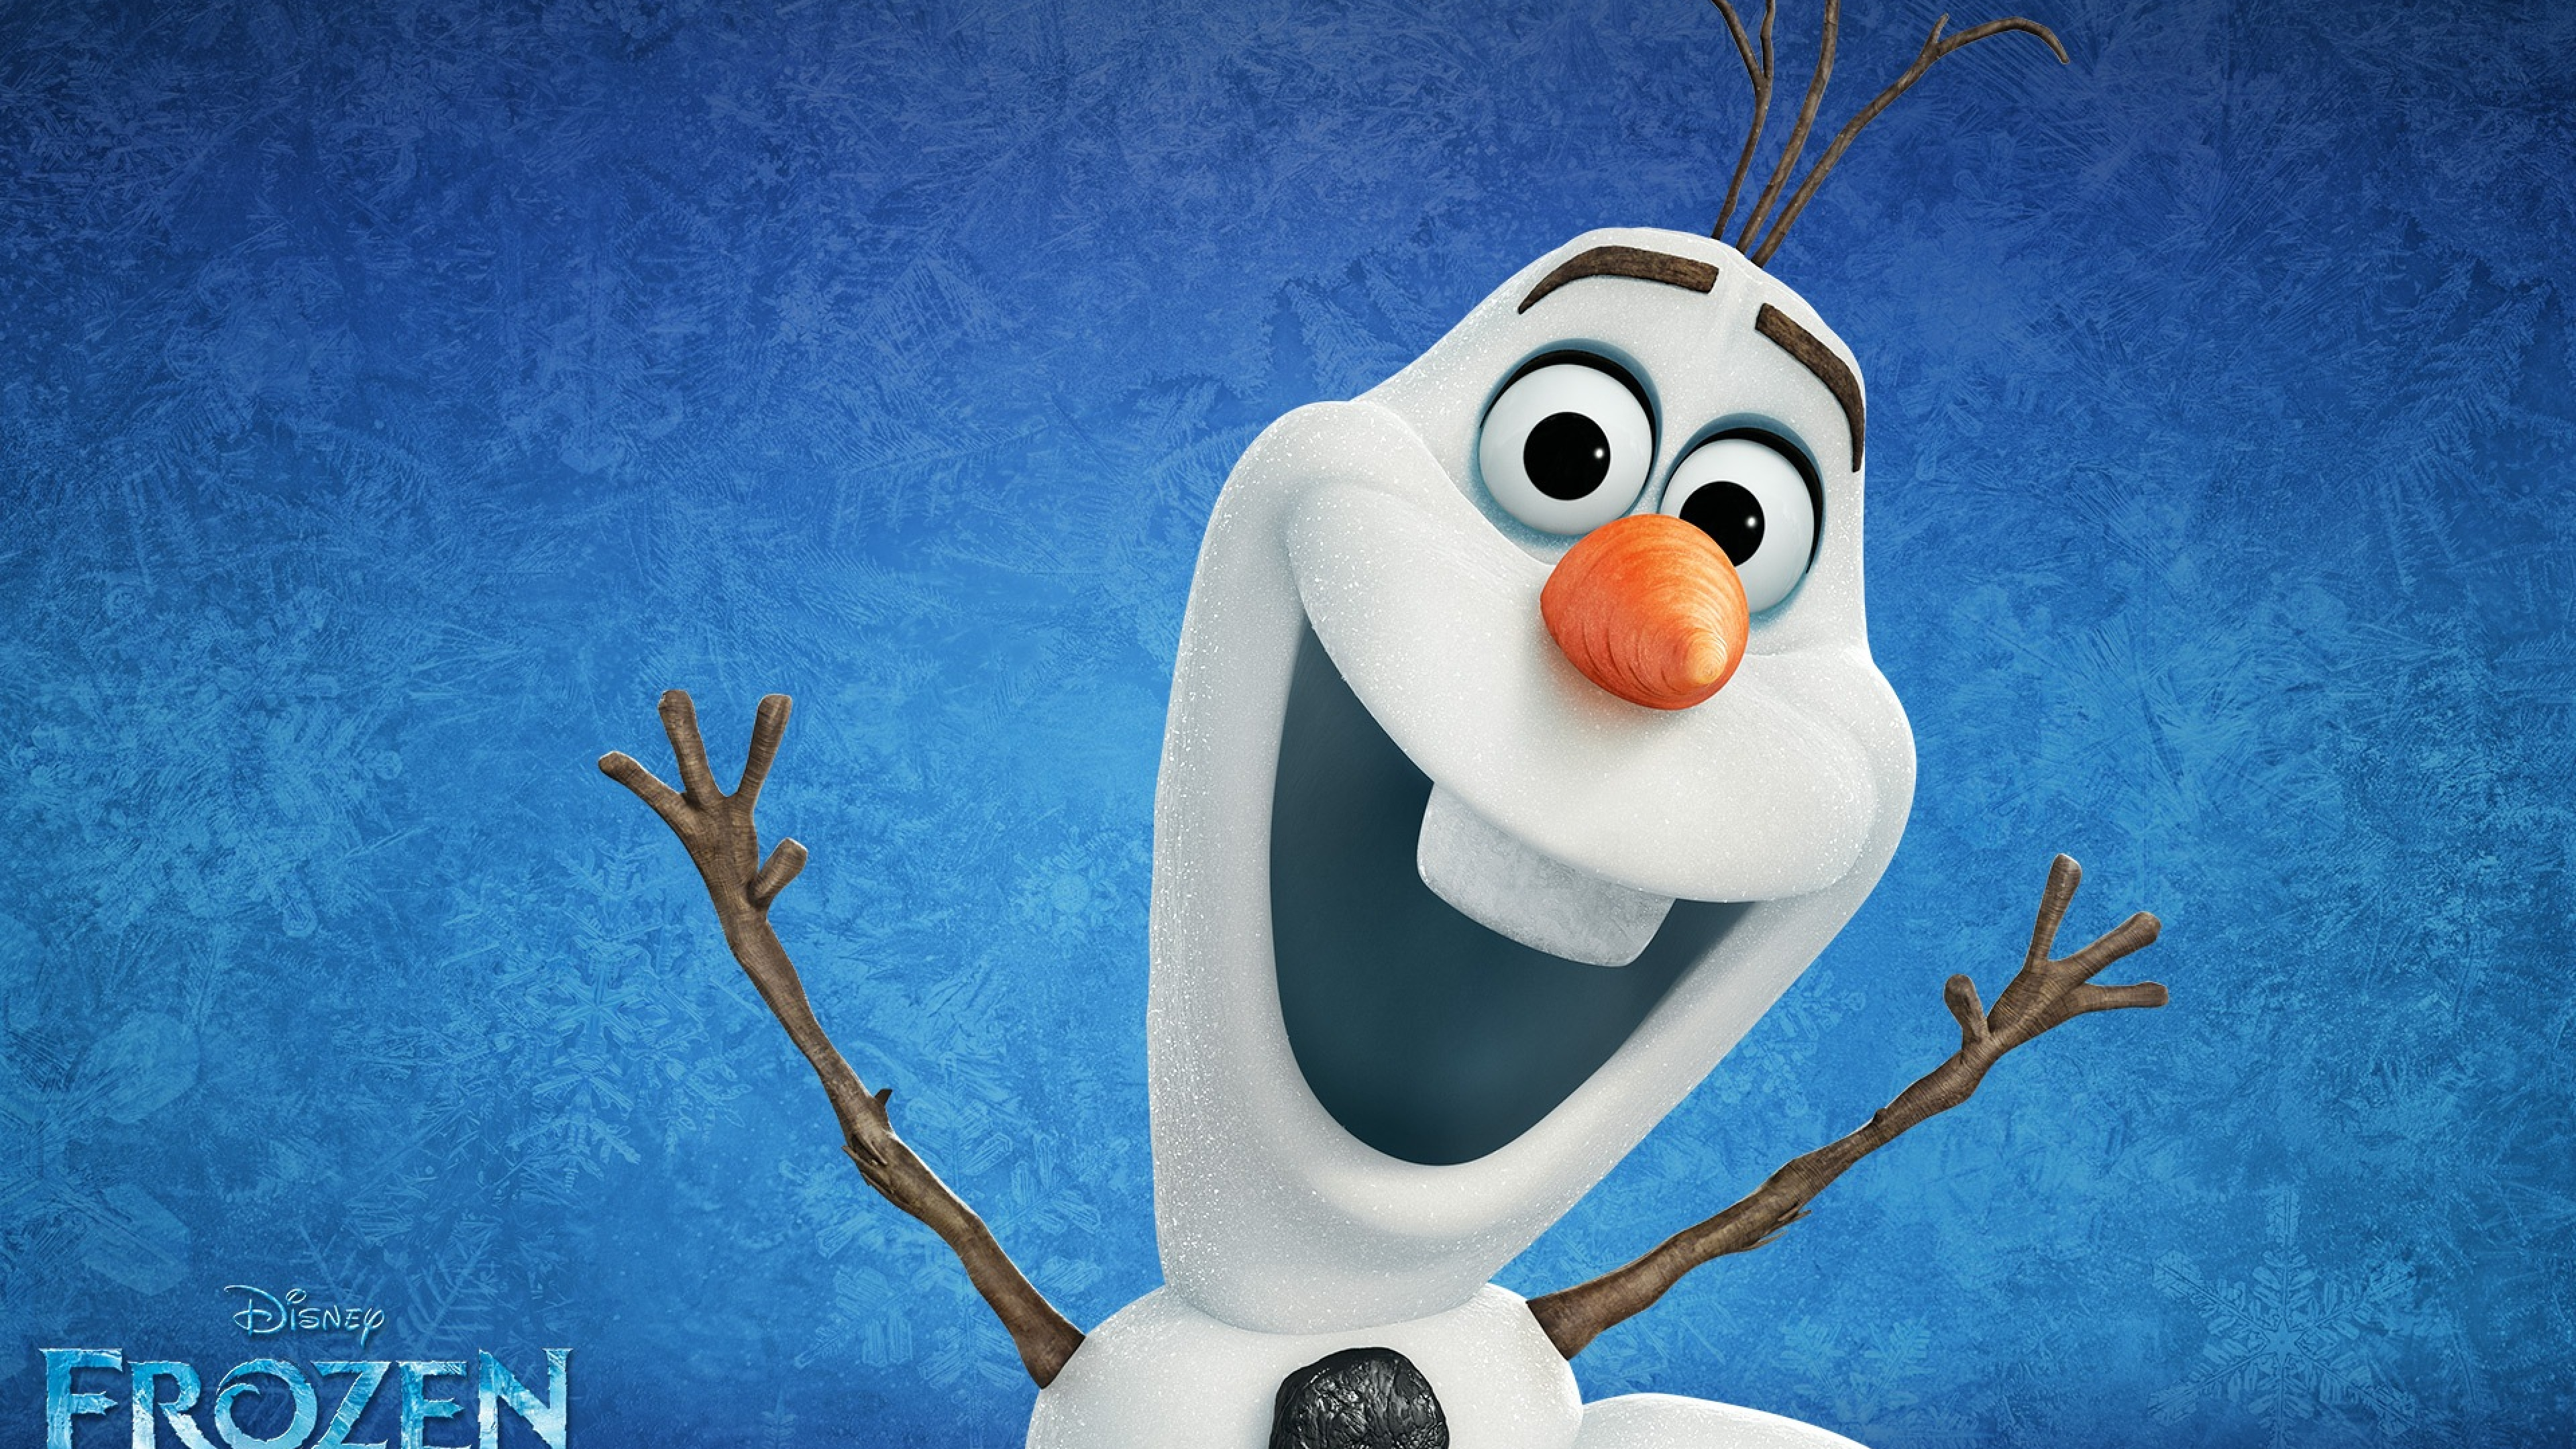 Olaf The Snowman Wallpapers Widescreen High Definition Amazing Rh